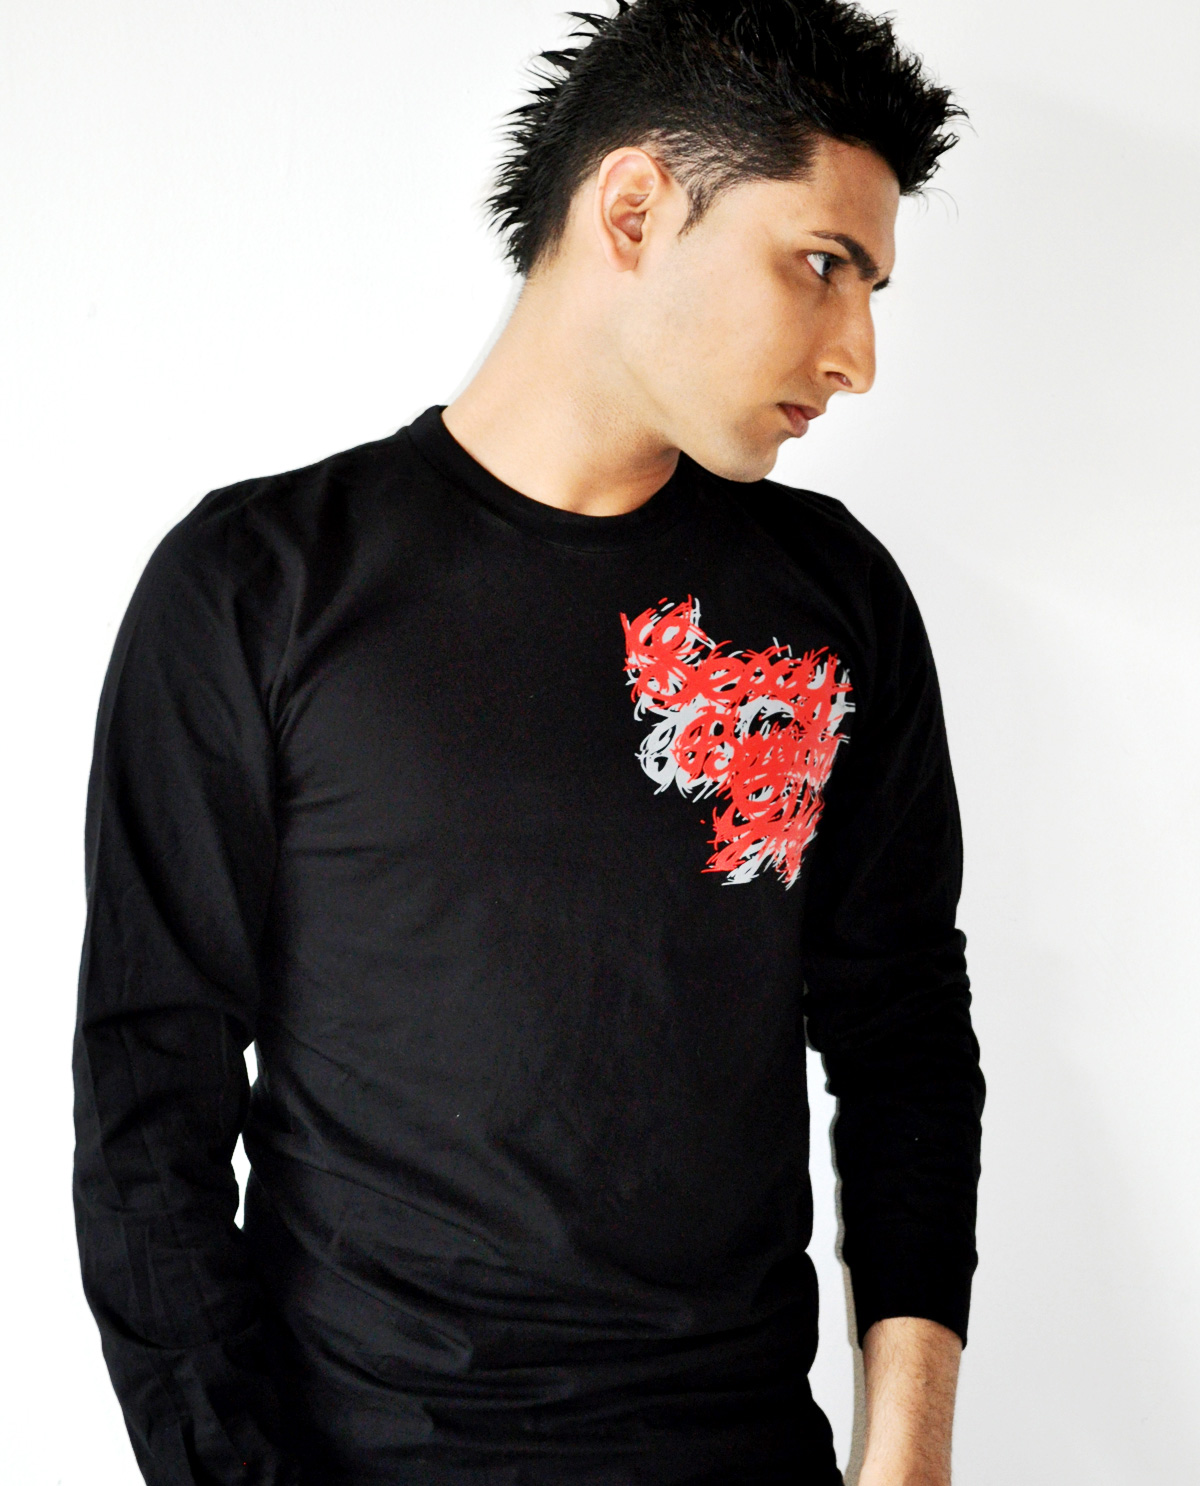 Sexy Brown Guy black long sleeved shirt. Graphic design t.shirts by Brown Man Clothing Co.